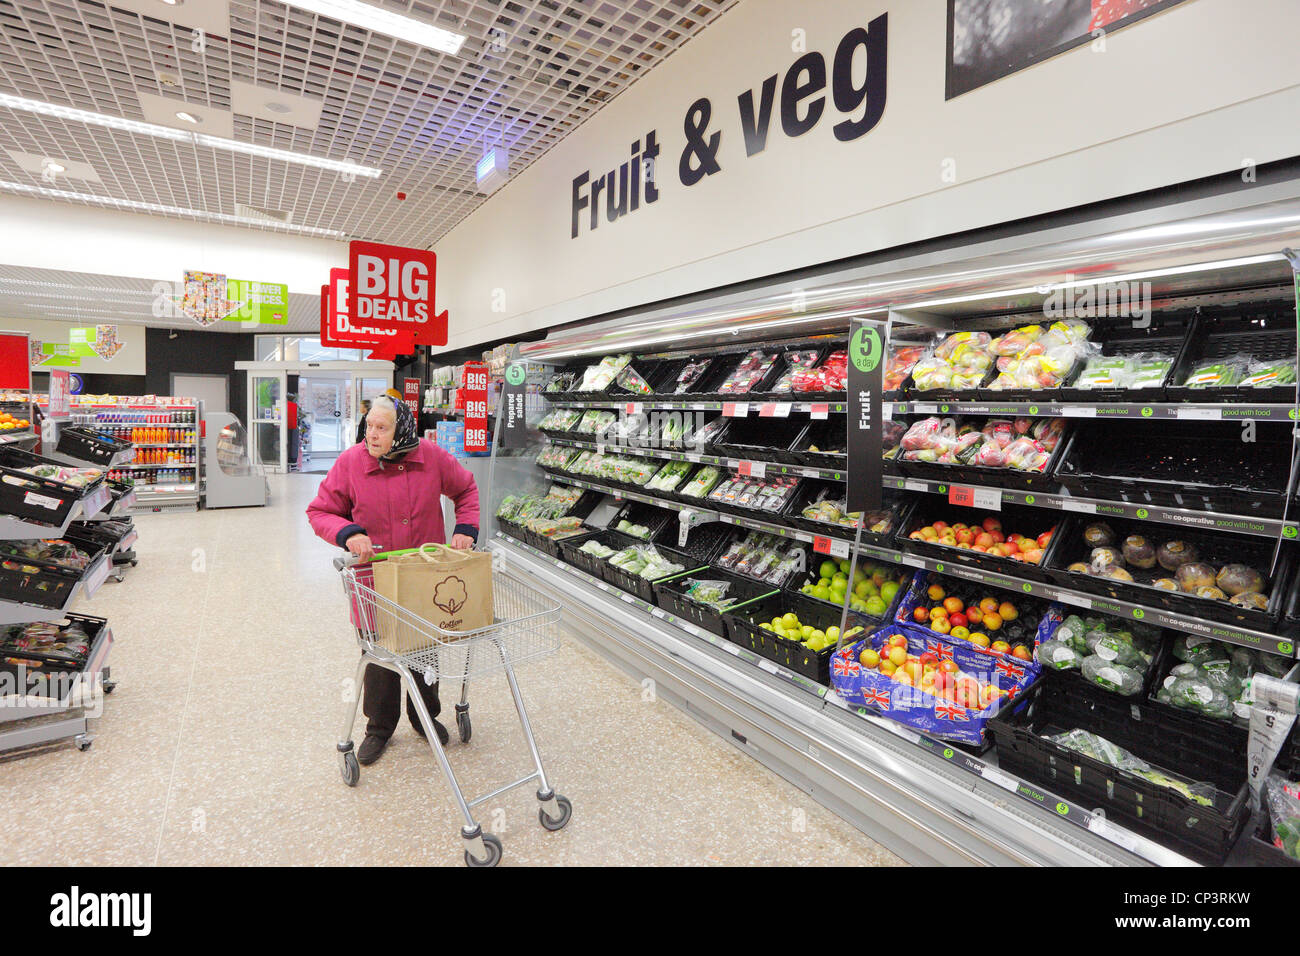 Old woman shopping pushing a trolley in a supermarket. Fruit and vegetable aisle. - Stock Image